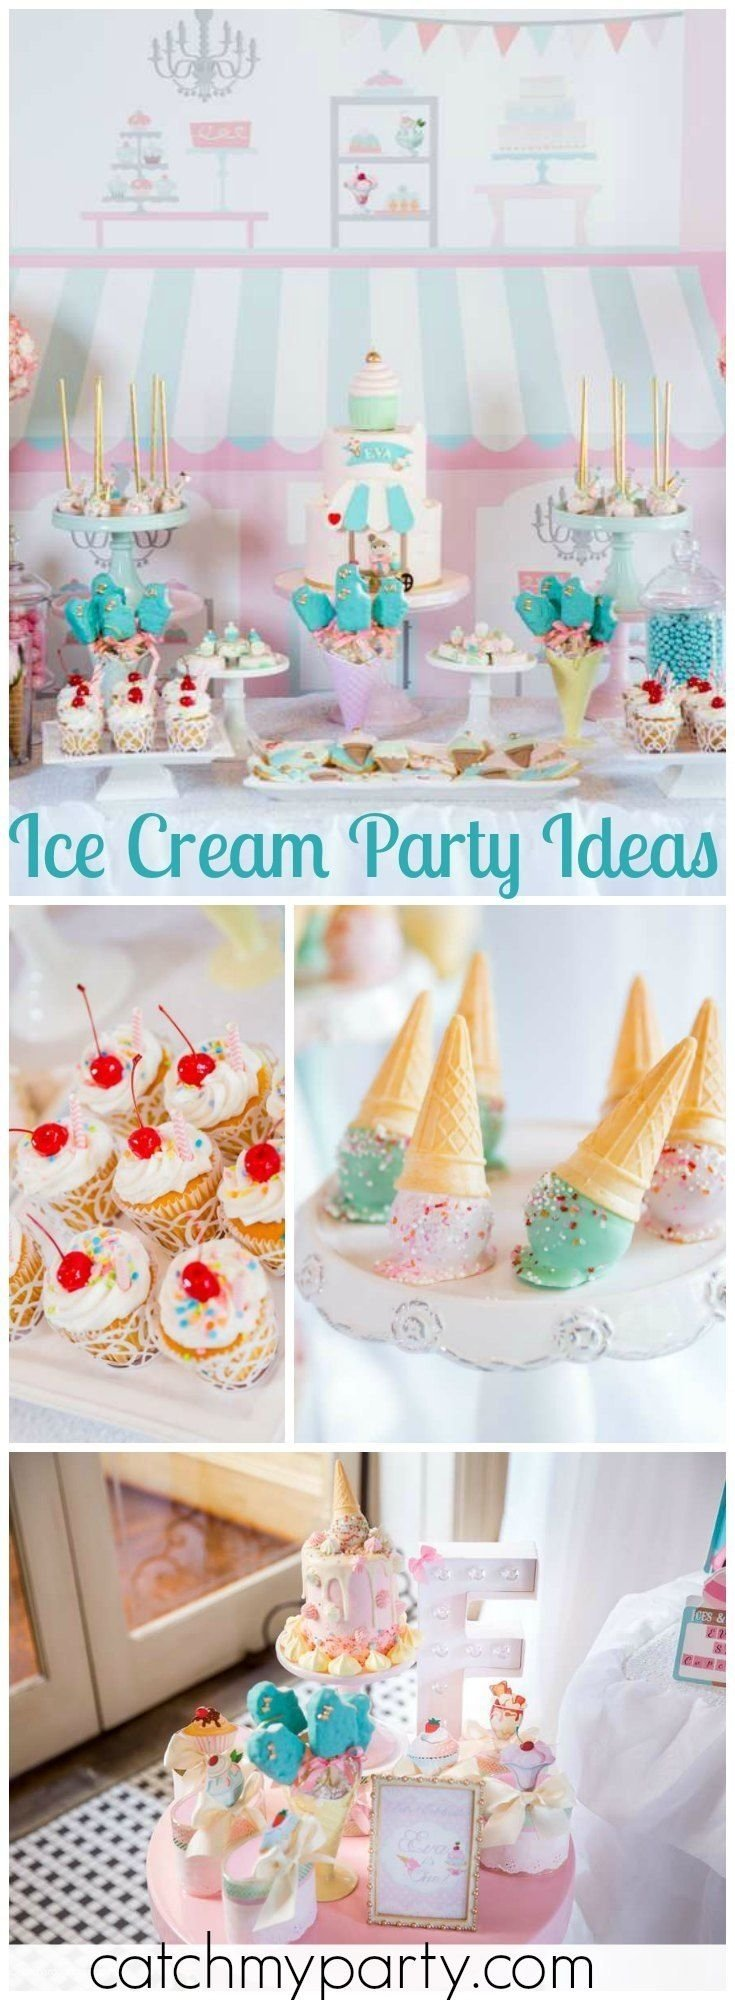 10 Most Recommended Ice Cream Social Party Ideas 411 best ice cream party ideas images on pinterest birthdays 2 2020